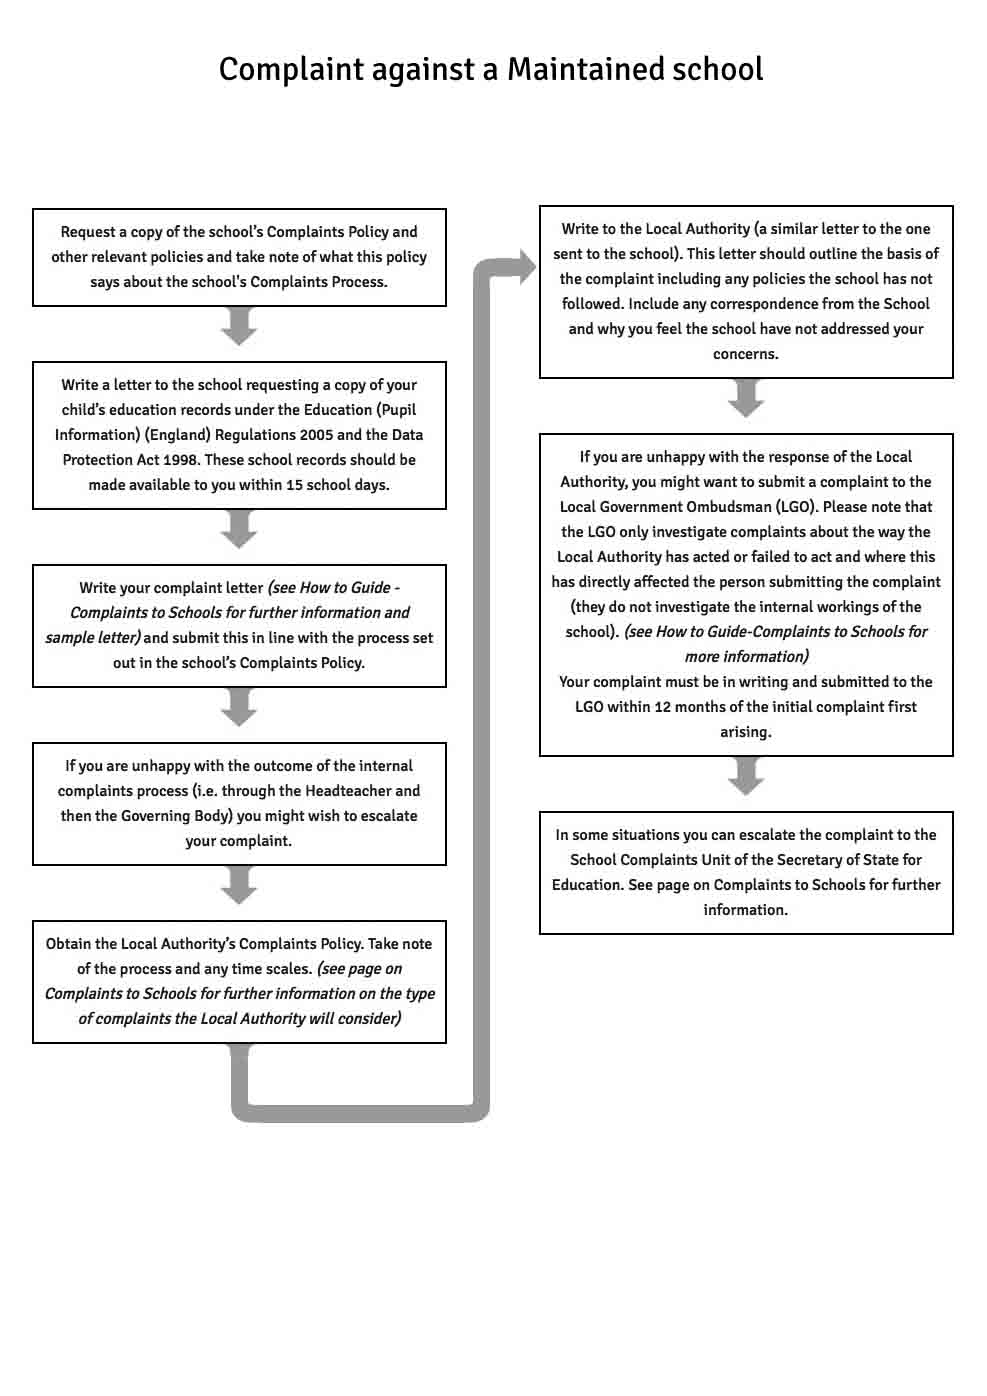 Complaints to maintained schools flowchart spiritdancerdesigns Gallery